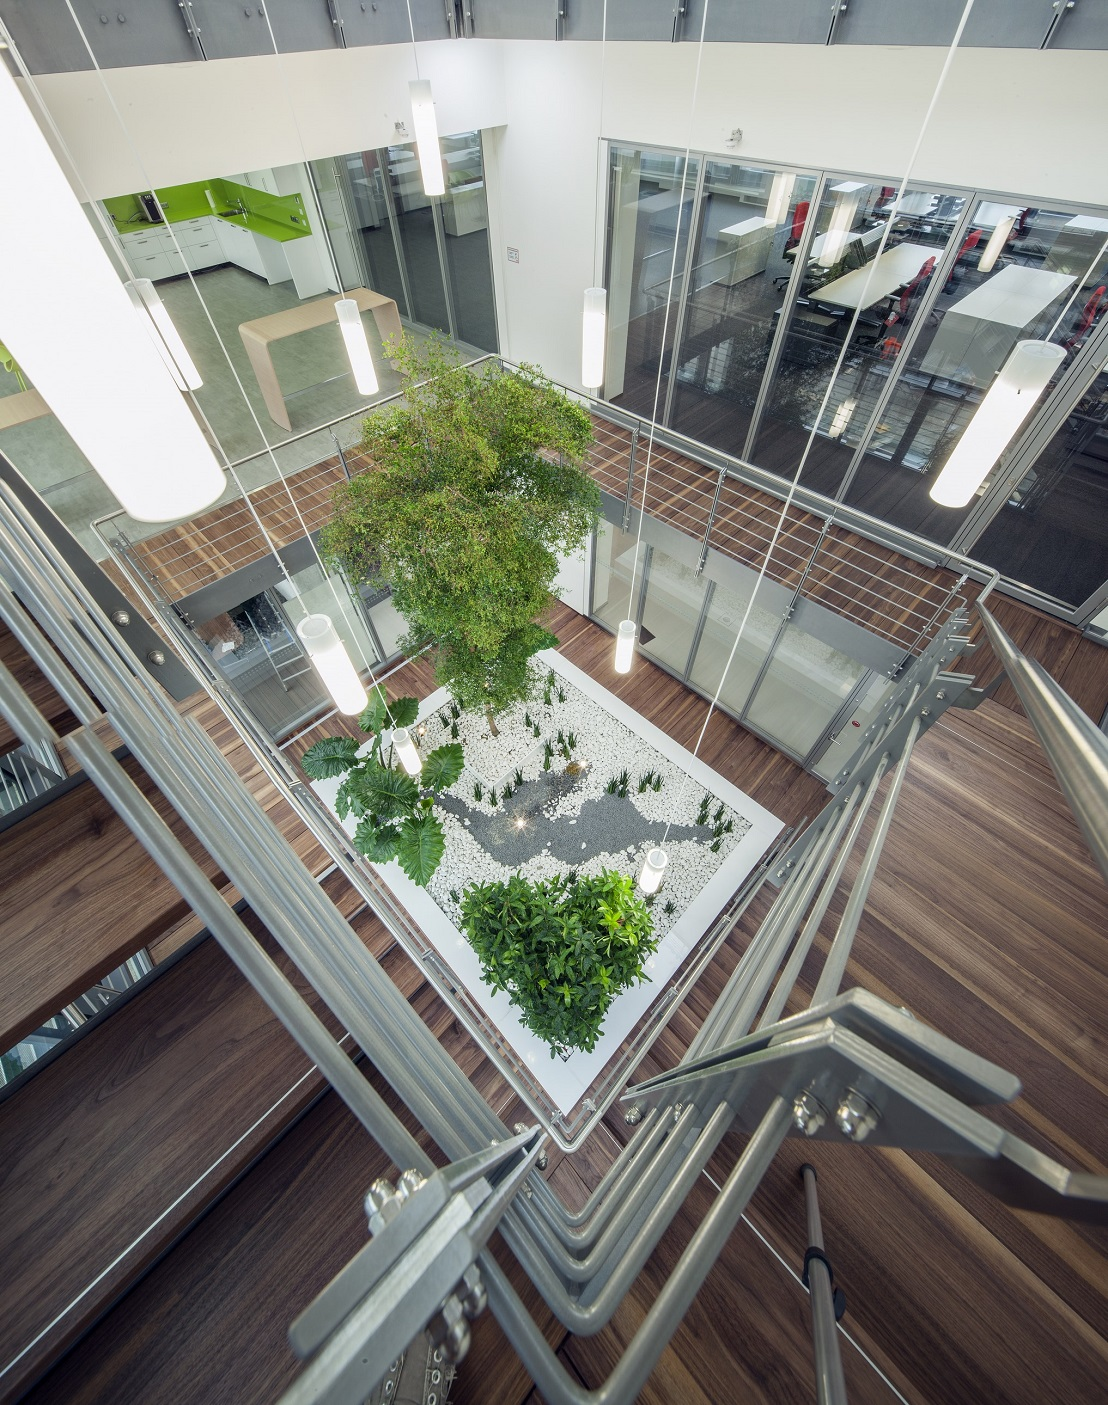 Atrium as a green patio on the stairs - trees and plants provide oxygen - near Munich